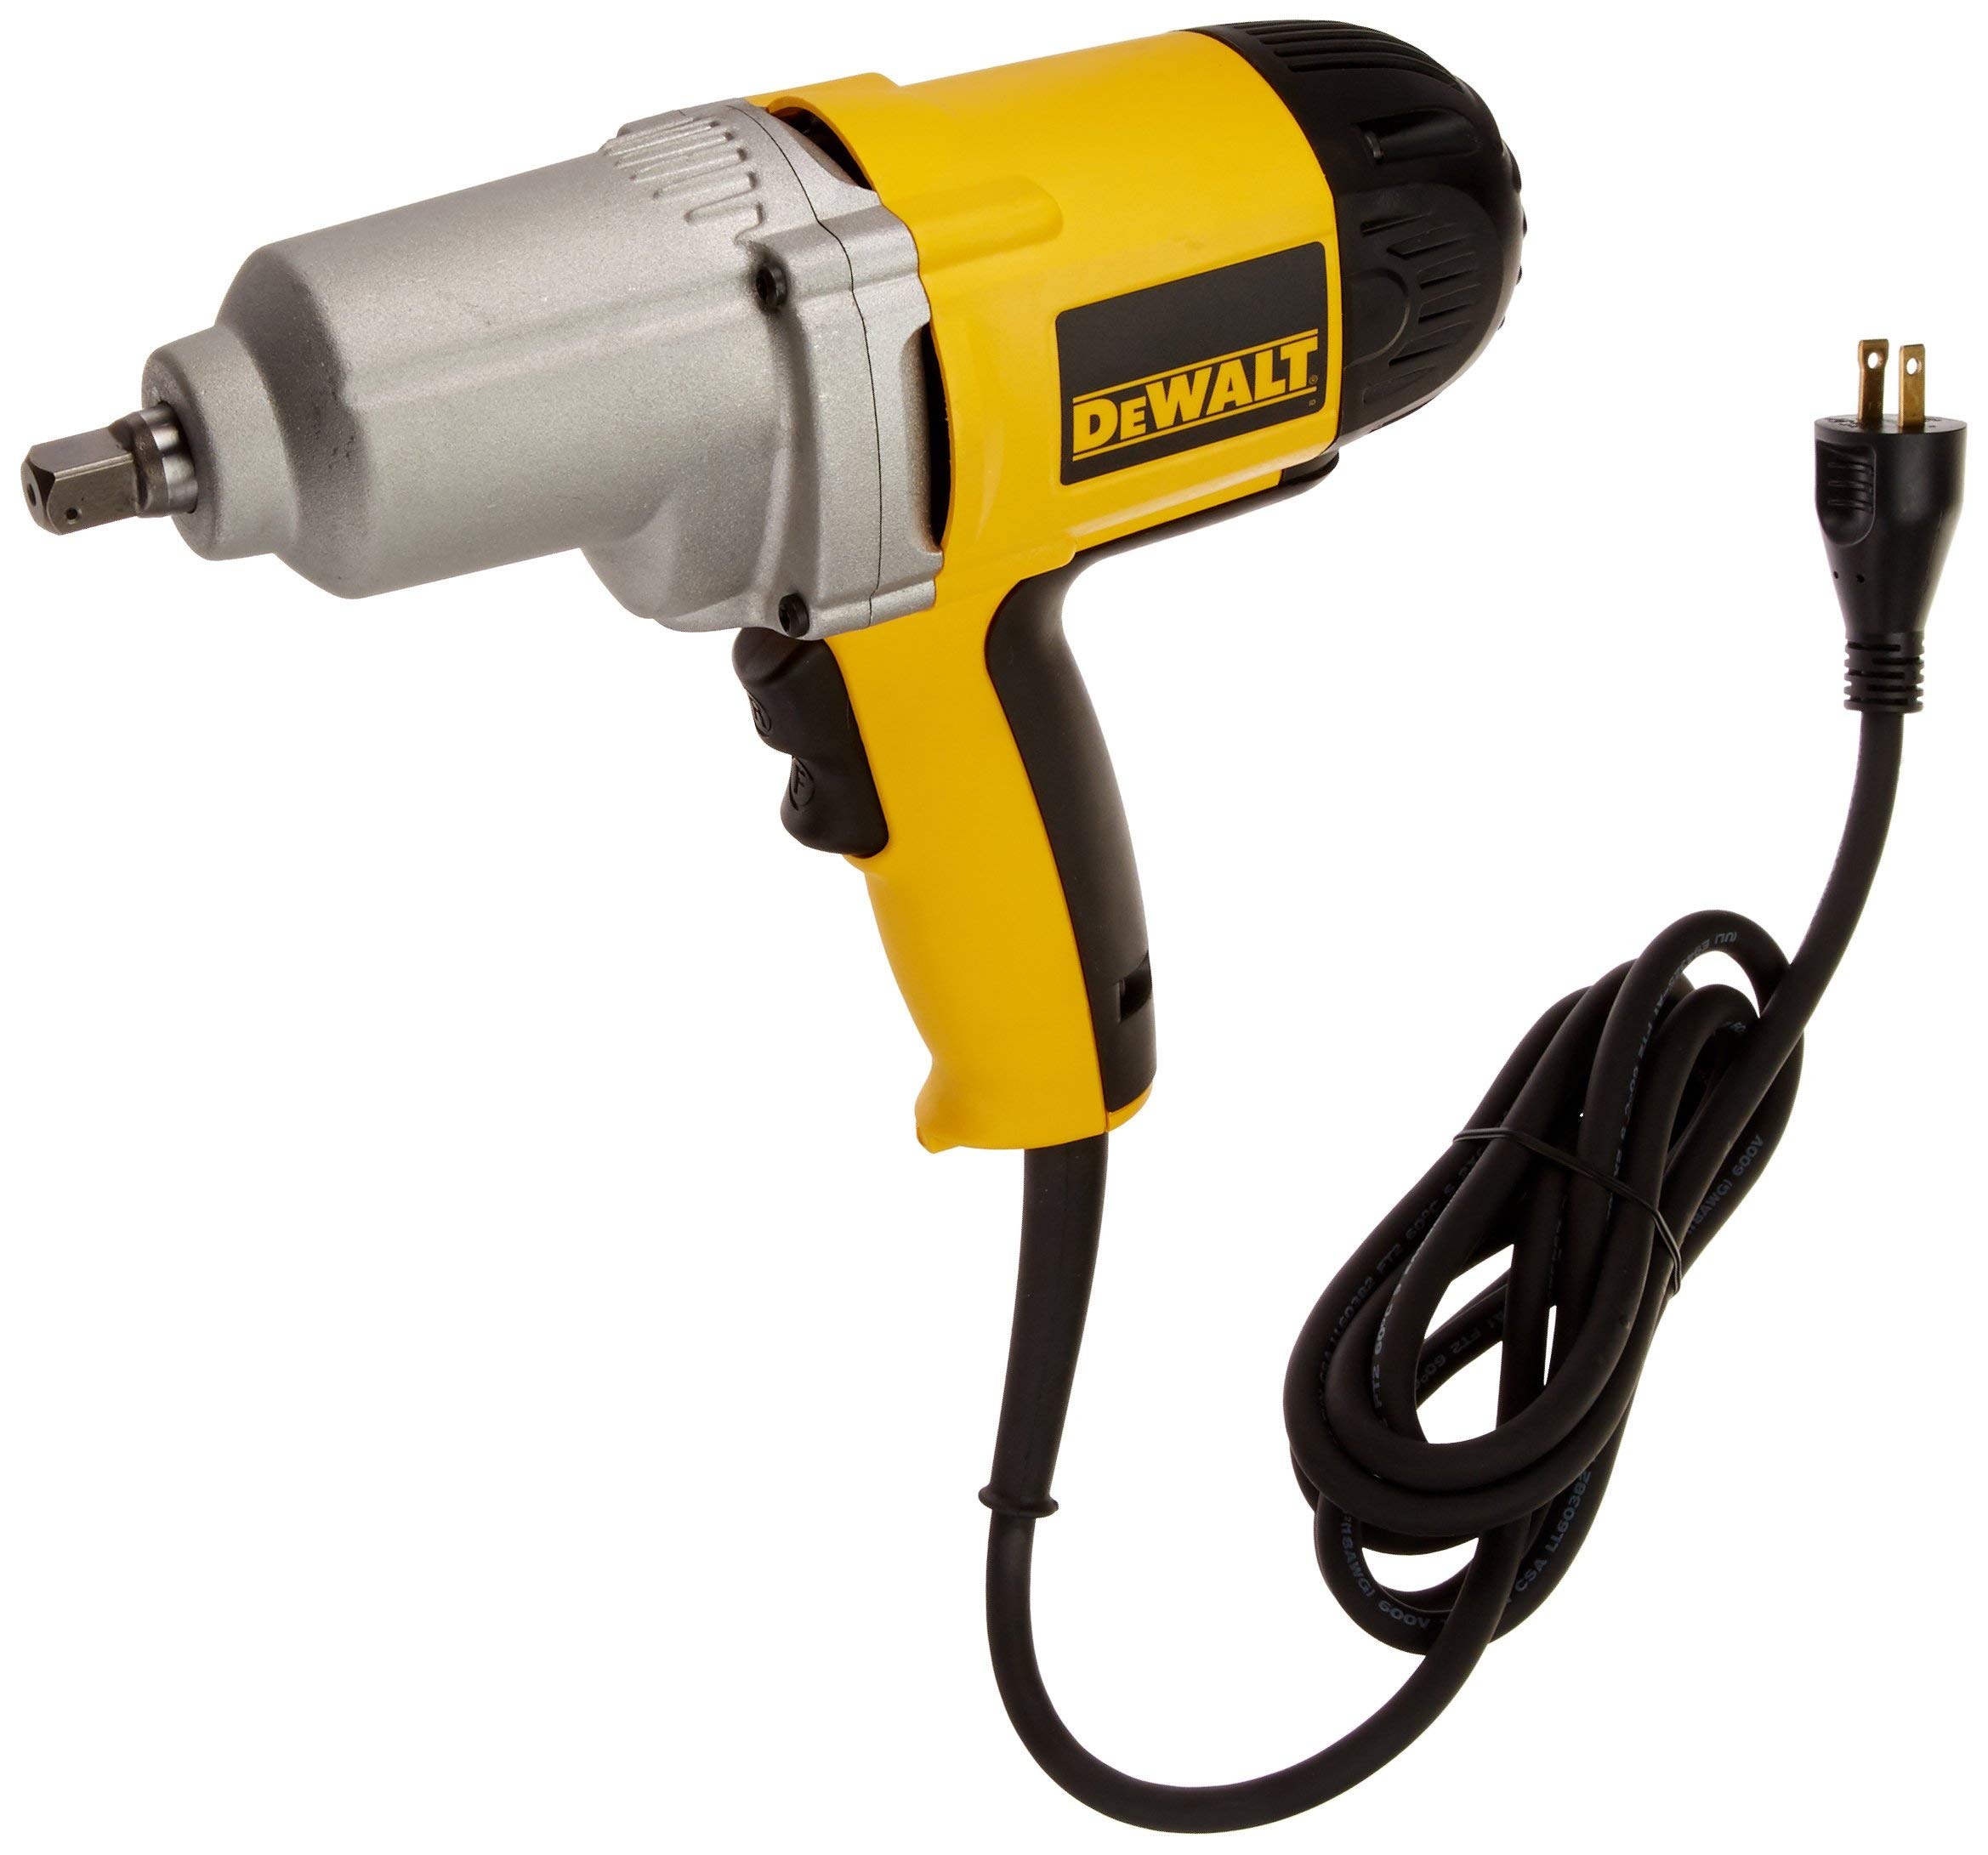 DEWALT DW292K 7.5 Amp 1/2-Inch Impact Wrench with Detent Pin Anvil (Certified Refurbished) by DEWALT